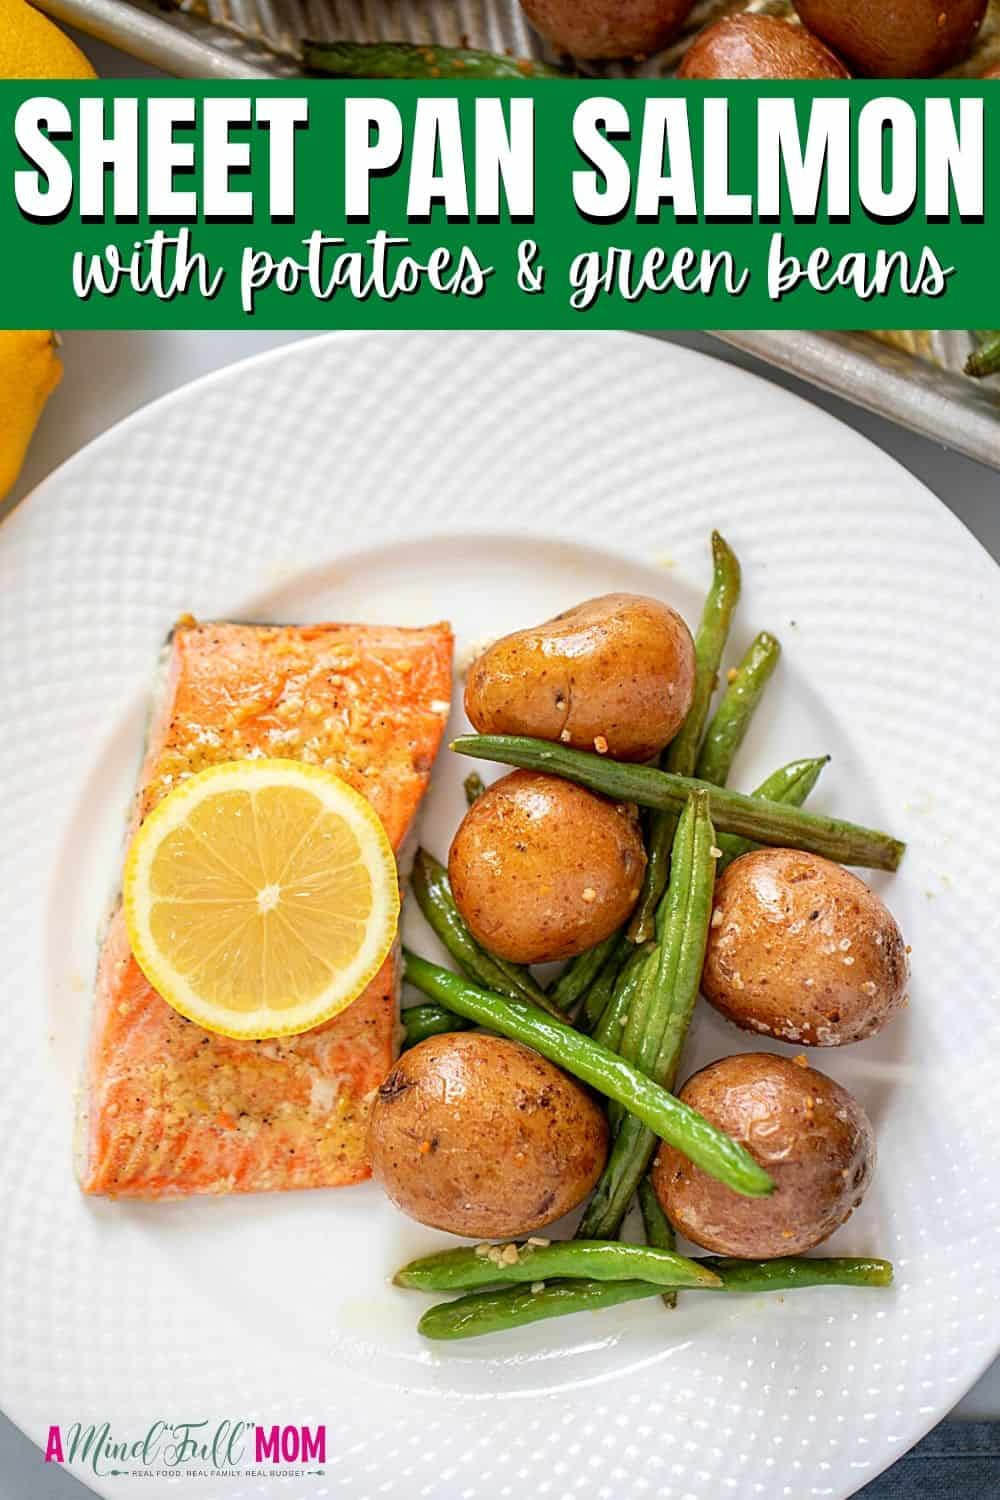 Sheet Pan Salmon, made with potatoes, green beans, and a honey garlic glaze, makes getting a delicious, elegant family meal on the table with minimal effort. It is fast enough for a weeknight meal, yet impressive enough for a special occasion.